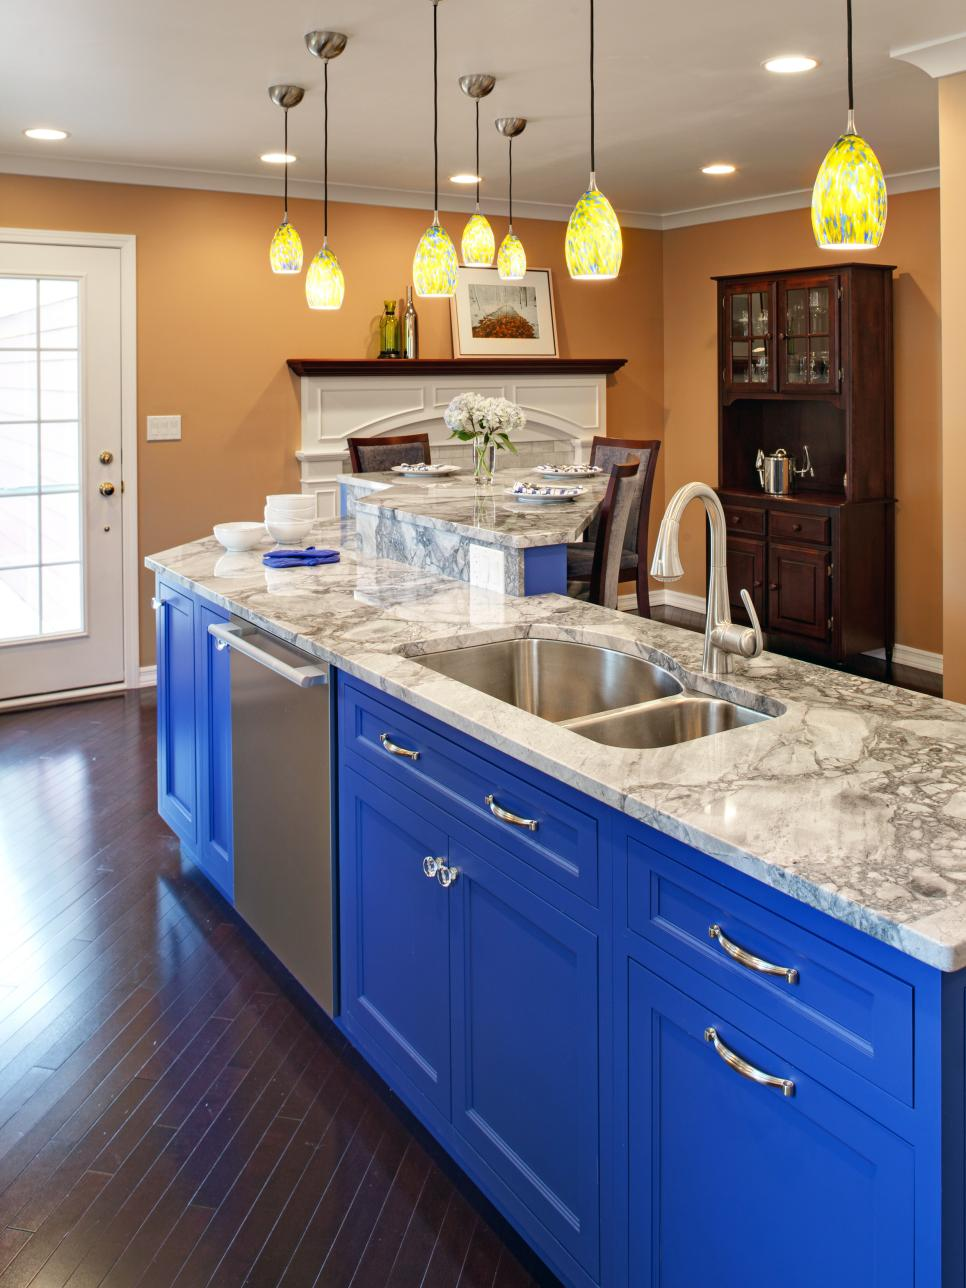 Kitchen Cabinet Colors Ideas Hgtv's Best Pictures Of Kitchen Cabinet Color Ideas From Top .